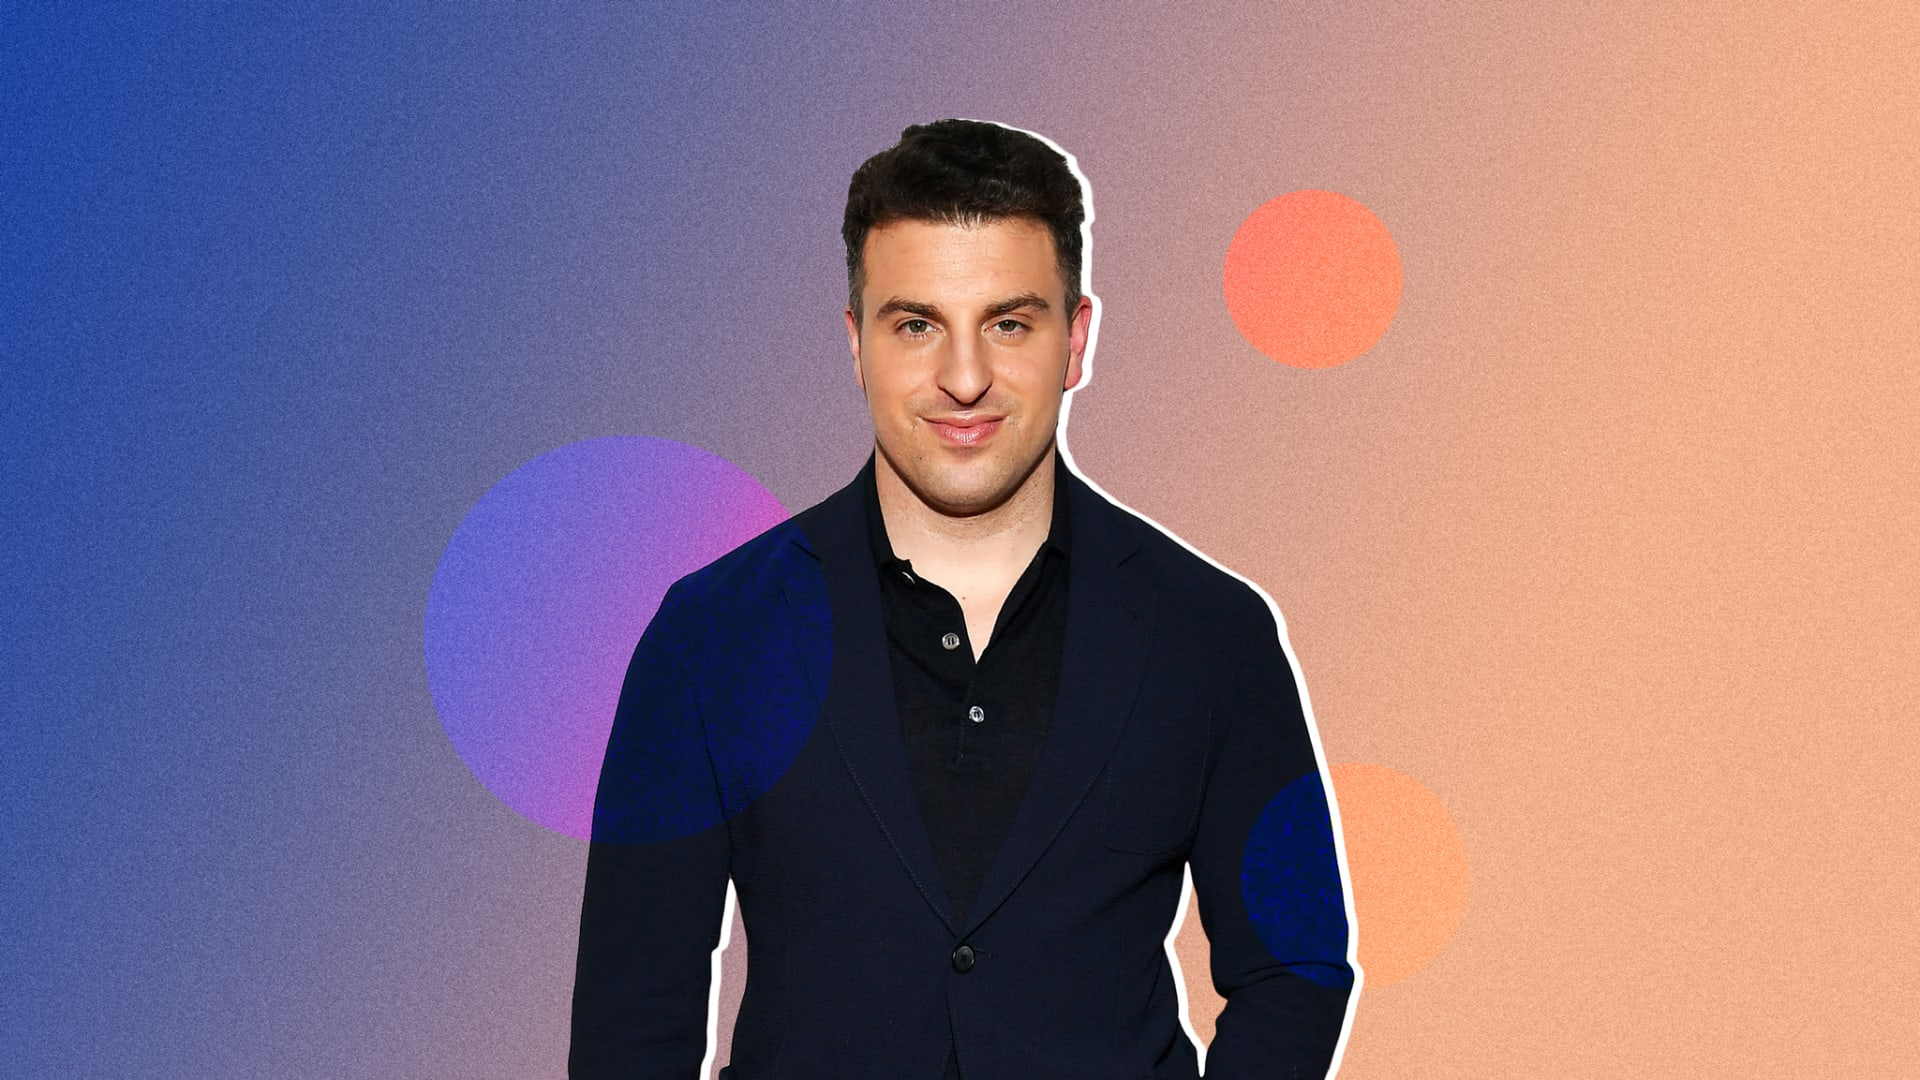 Brian Chesky, CEO of Airbnb.